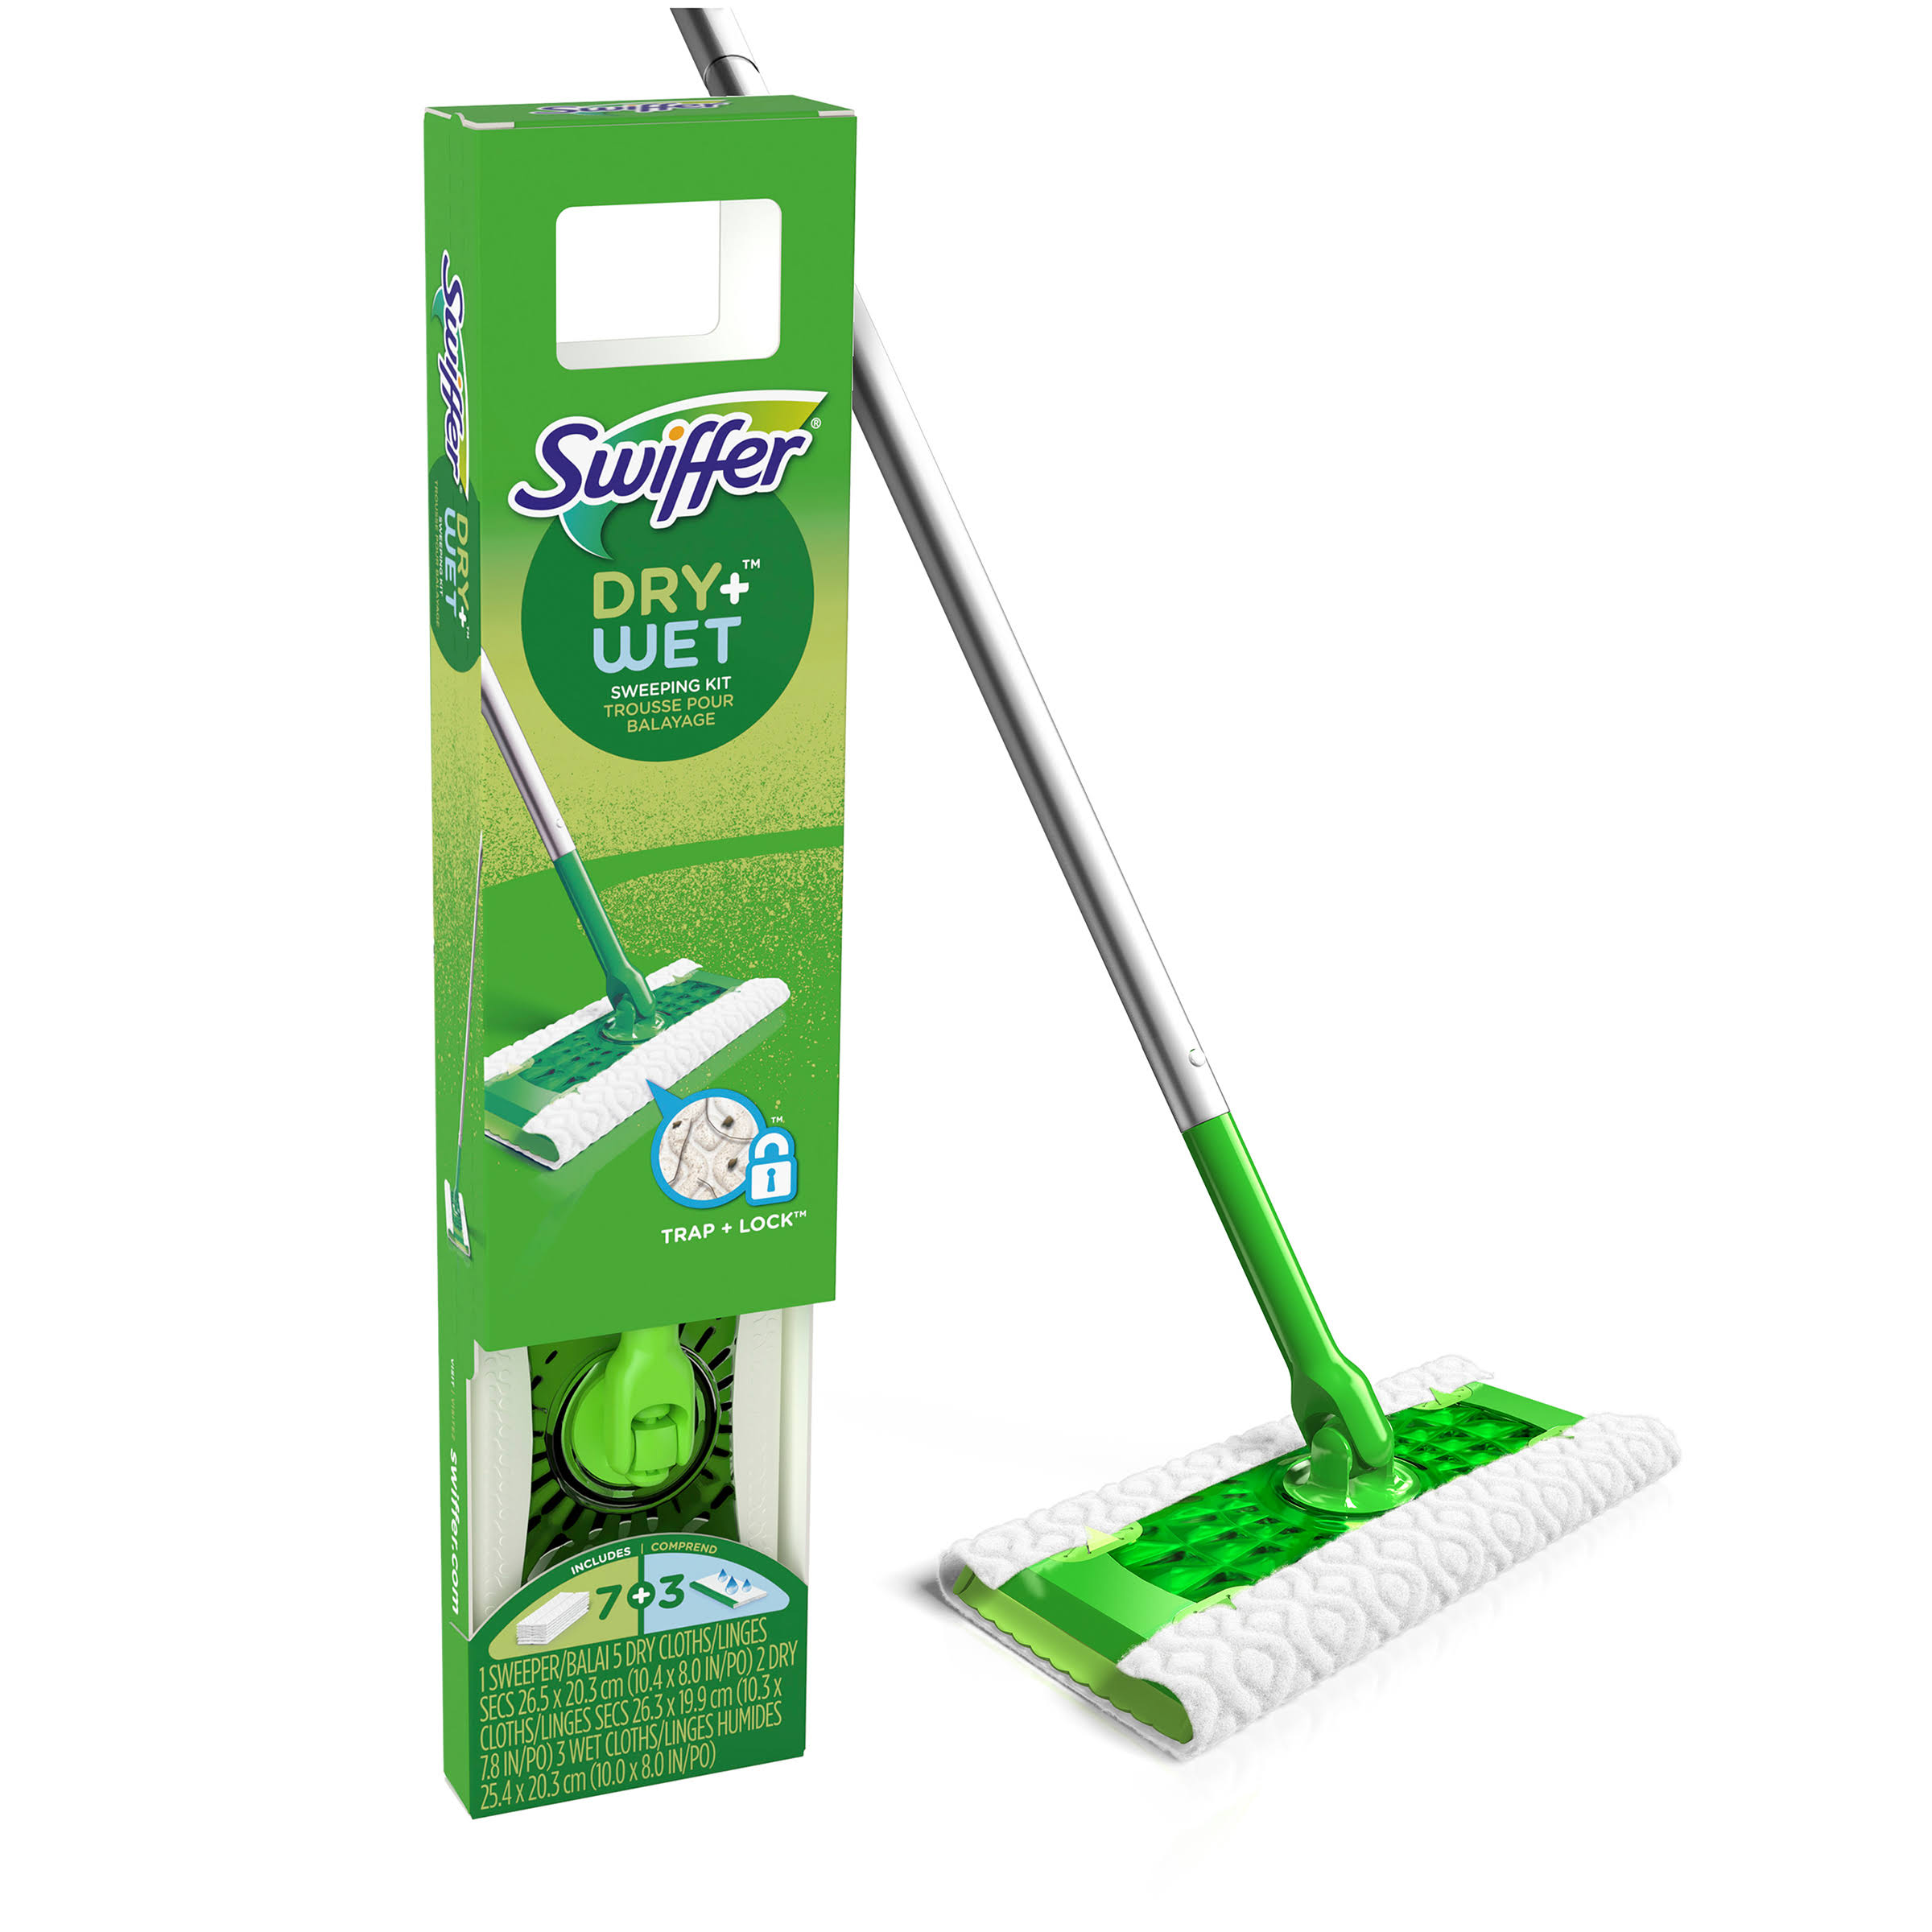 Swiffer Dry+Wet Sweeper Starter Kit - 11pc